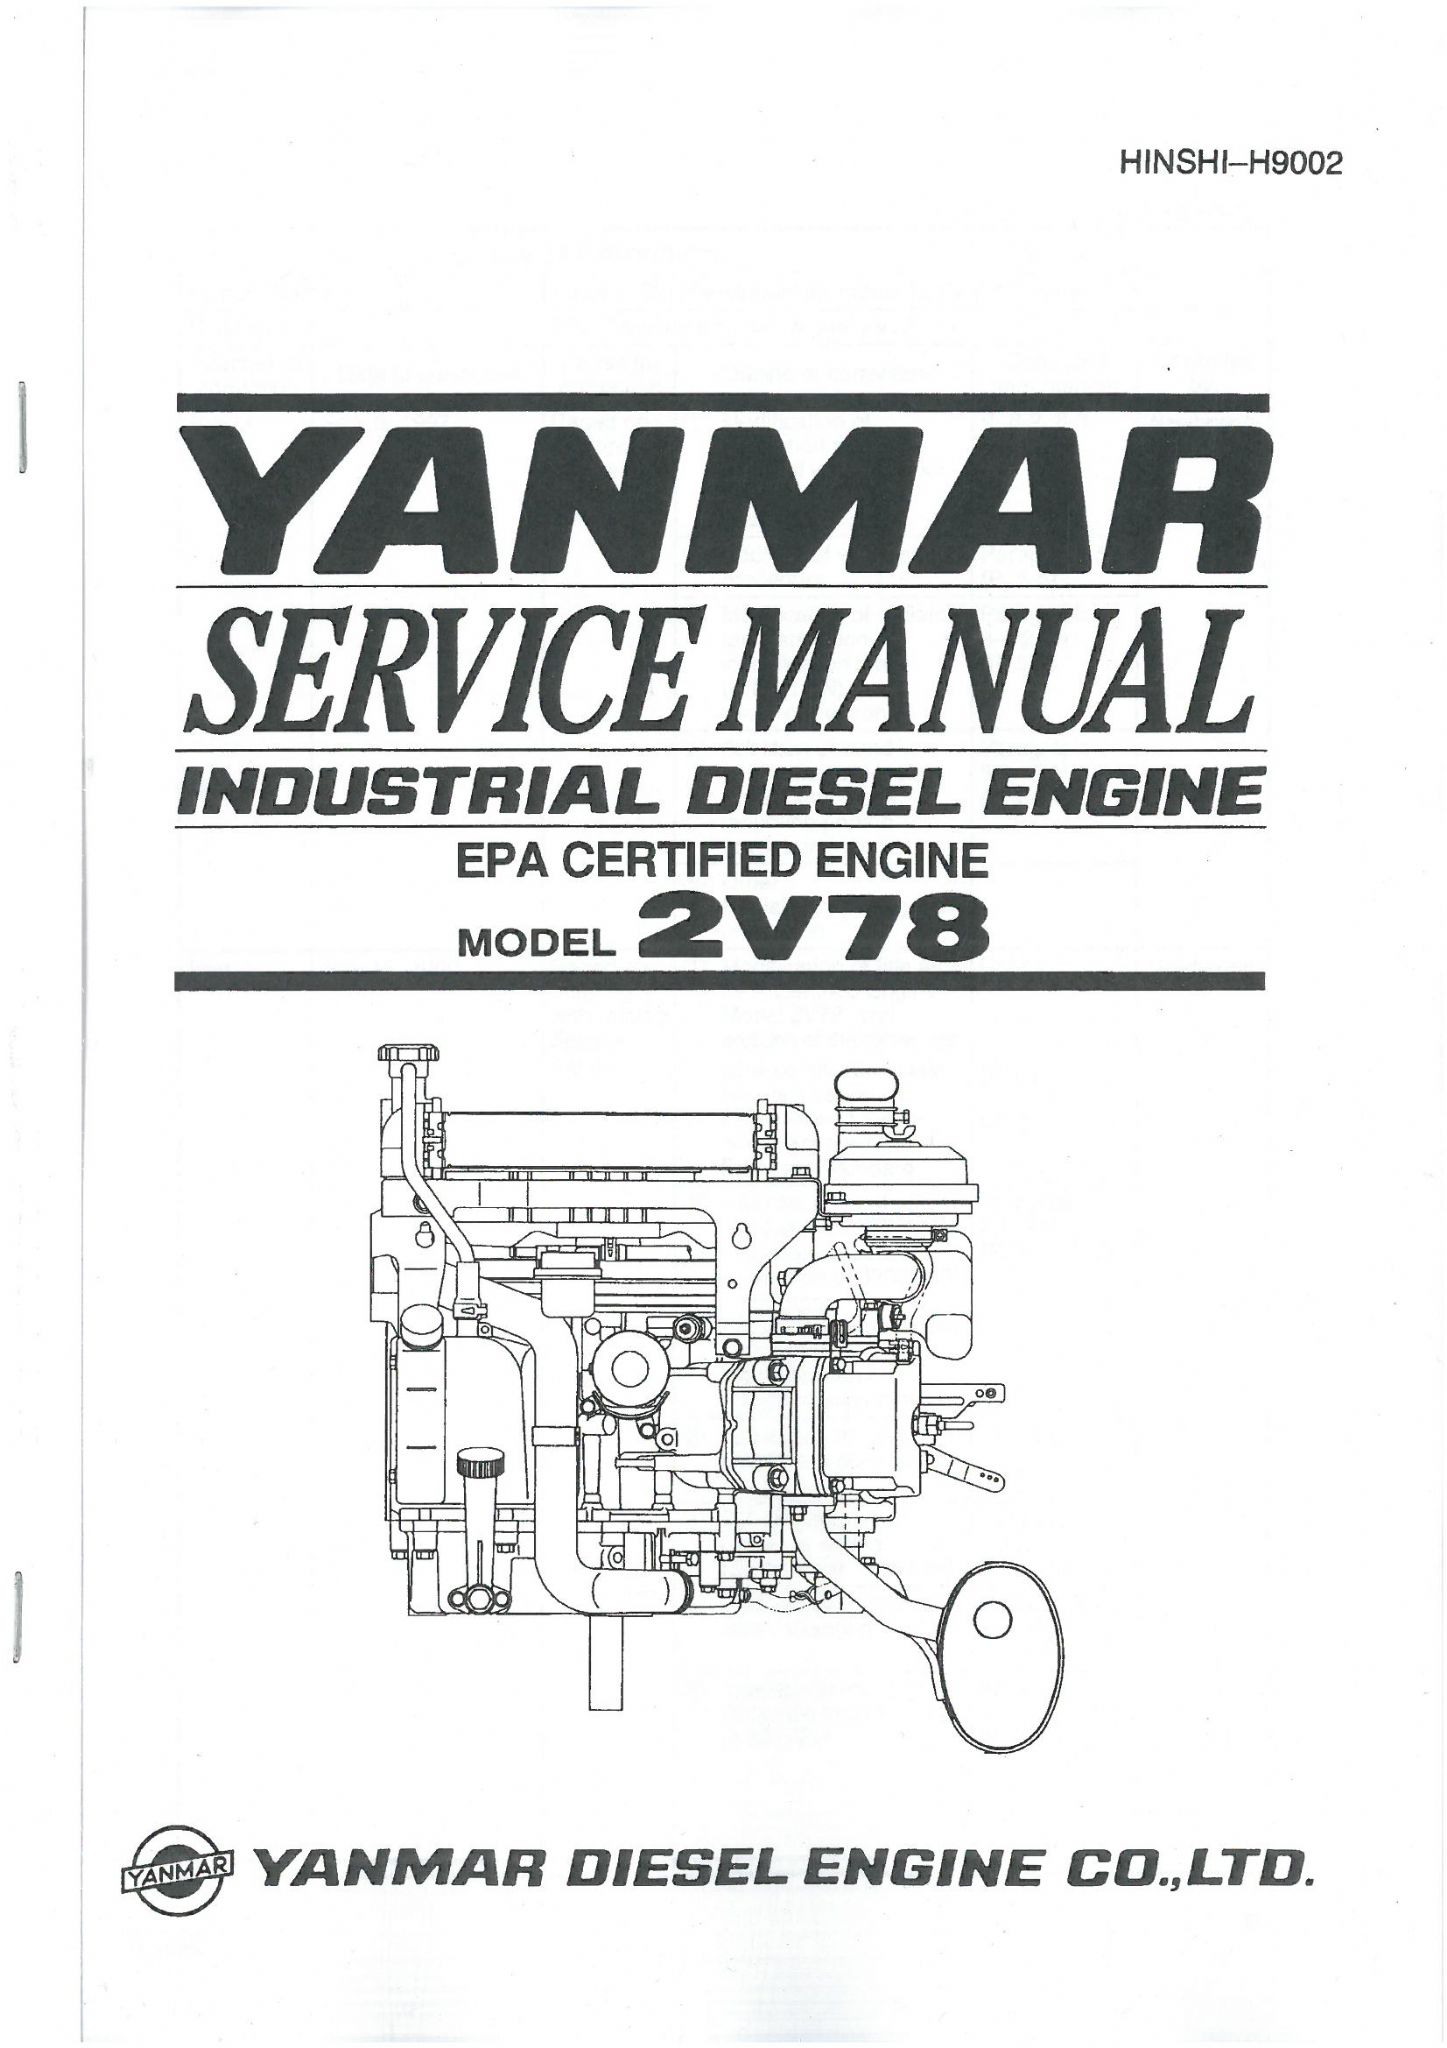 Yanmar Diesel Engine Model 2V78 Workshop Service Manual